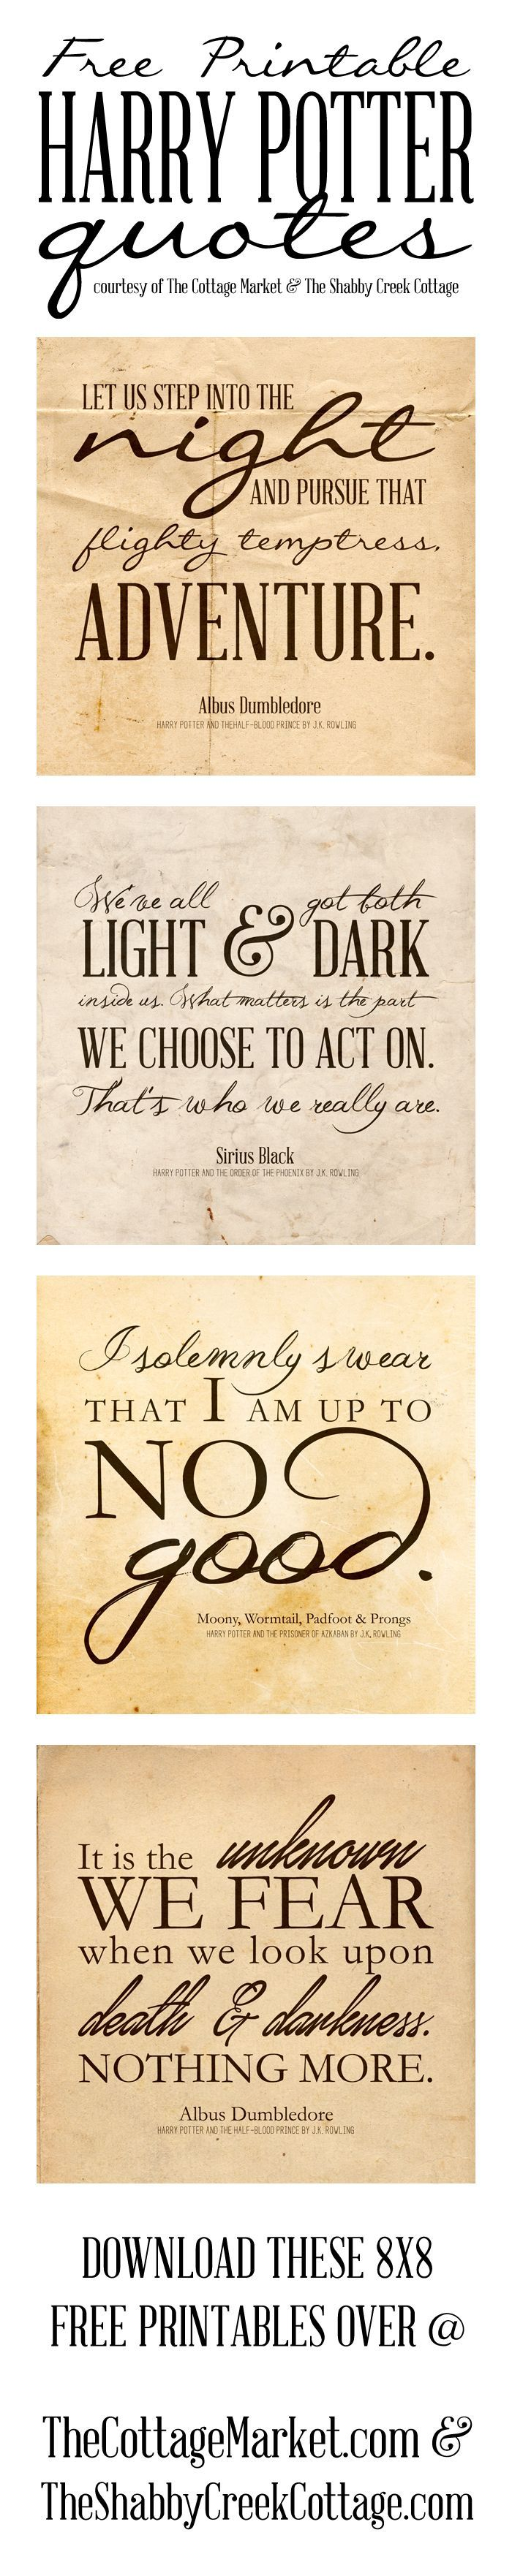 Free Harry Potter Quotes Printables | Harry Potter Love | Pinterest ...